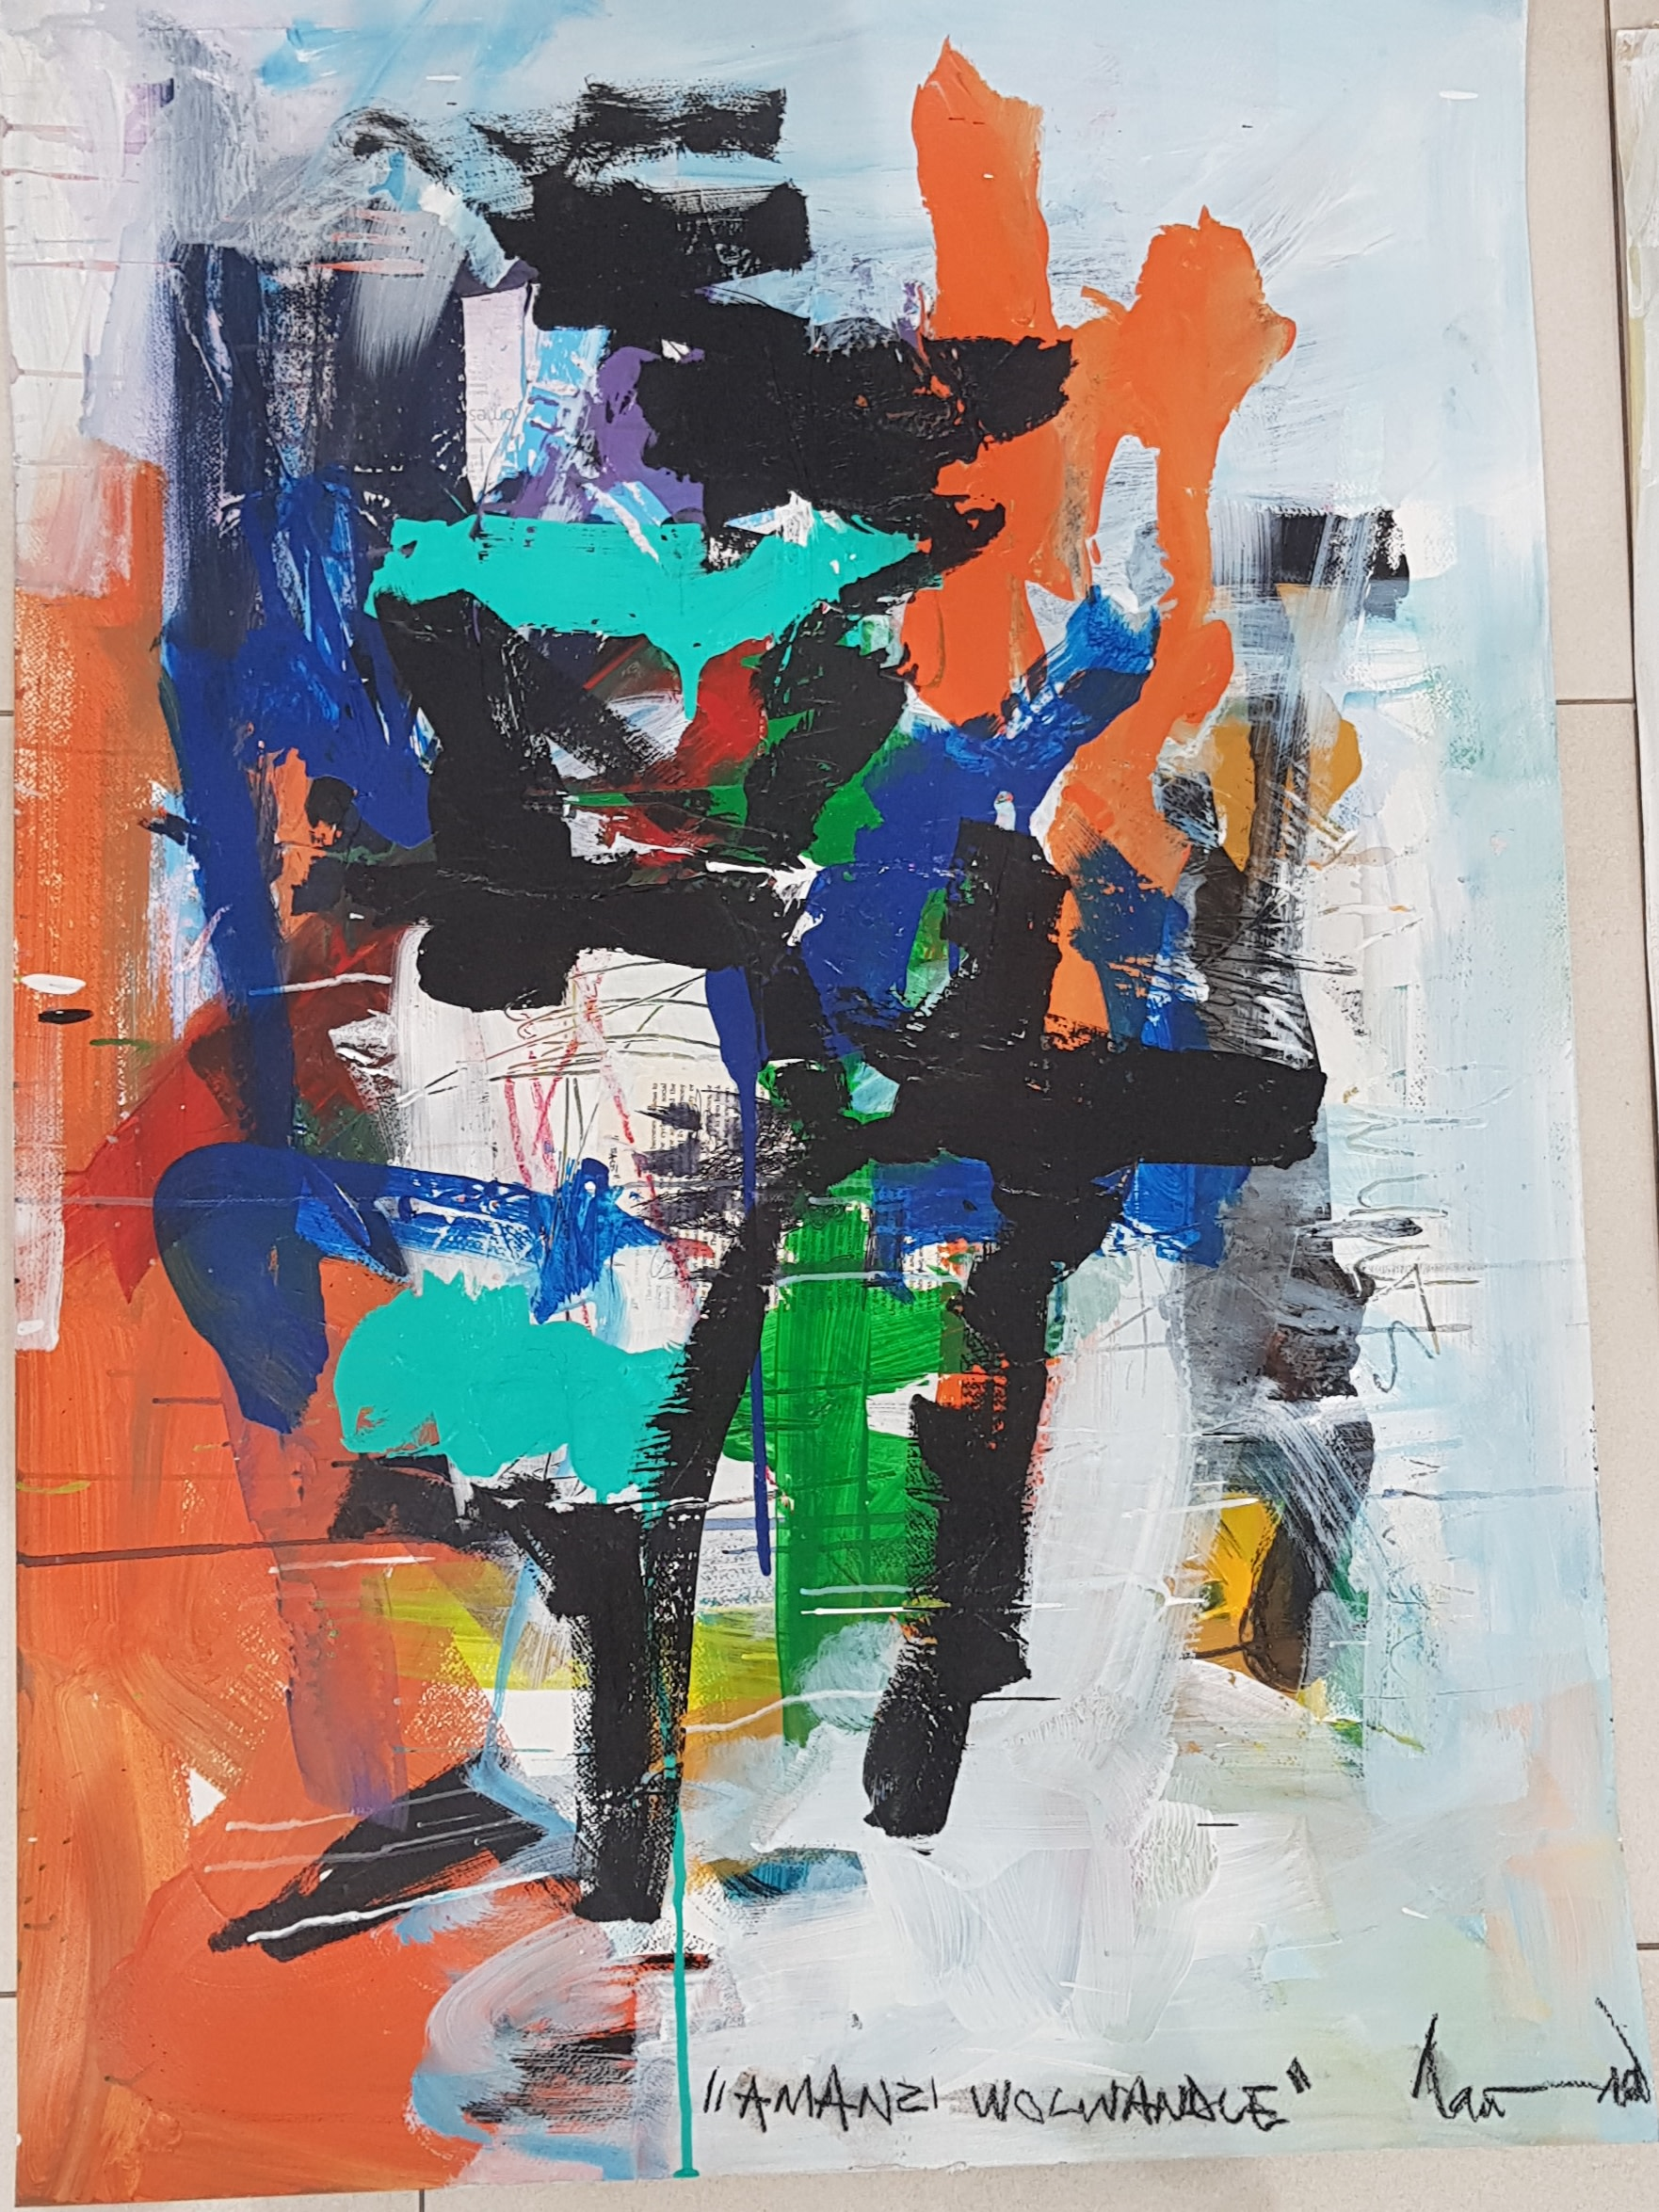 "<span class=""link fancybox-details-link""><a href=""/artists/83/series/other-works/6439-thando-ngwenya-amanzi-wolwandle-ocean-waters-2018/"">View Detail Page</a></span><div class=""artist""><strong>Thando Ngwenya</strong></div> <div class=""title""><em>Amanzi Wolwandle (Ocean Waters)</em>, 2018</div> <div class=""medium"">Mixed Media on Fabriano</div> <div class=""dimensions"">104.5cm x 74.5cm</div>"